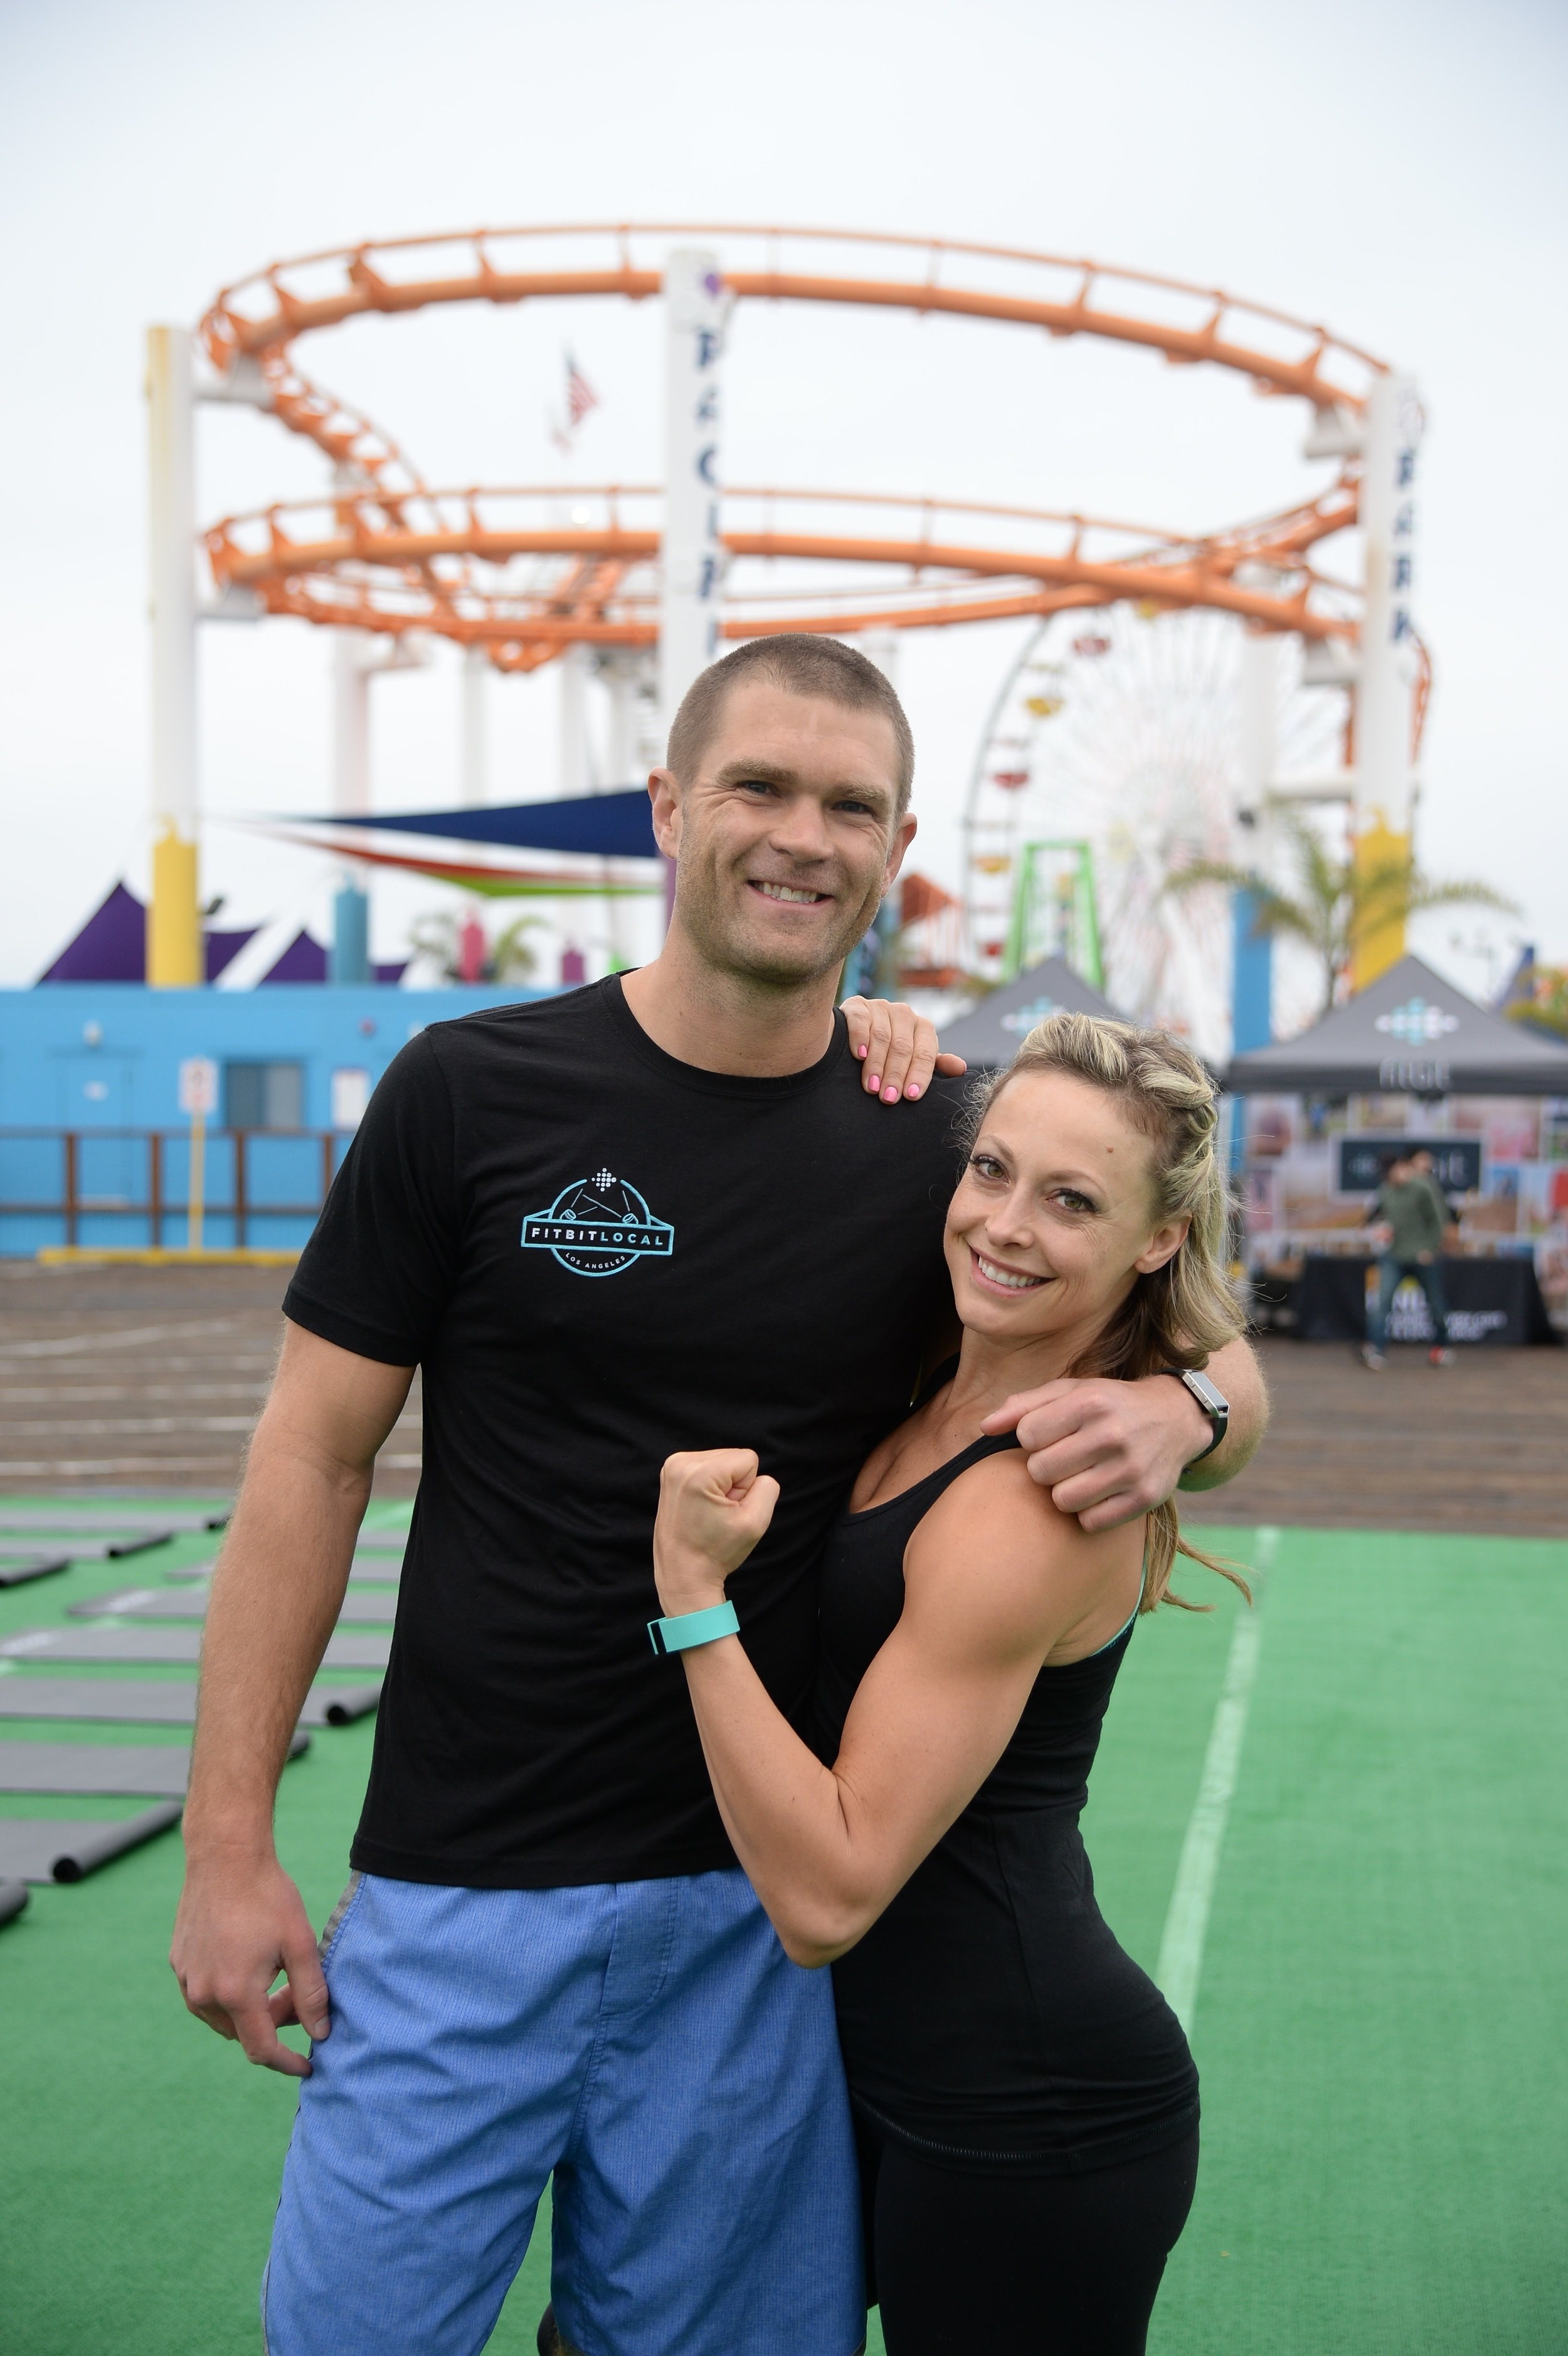 Fitbit Los Angeles ambassadors, Todd McCullough and Elise Joan.